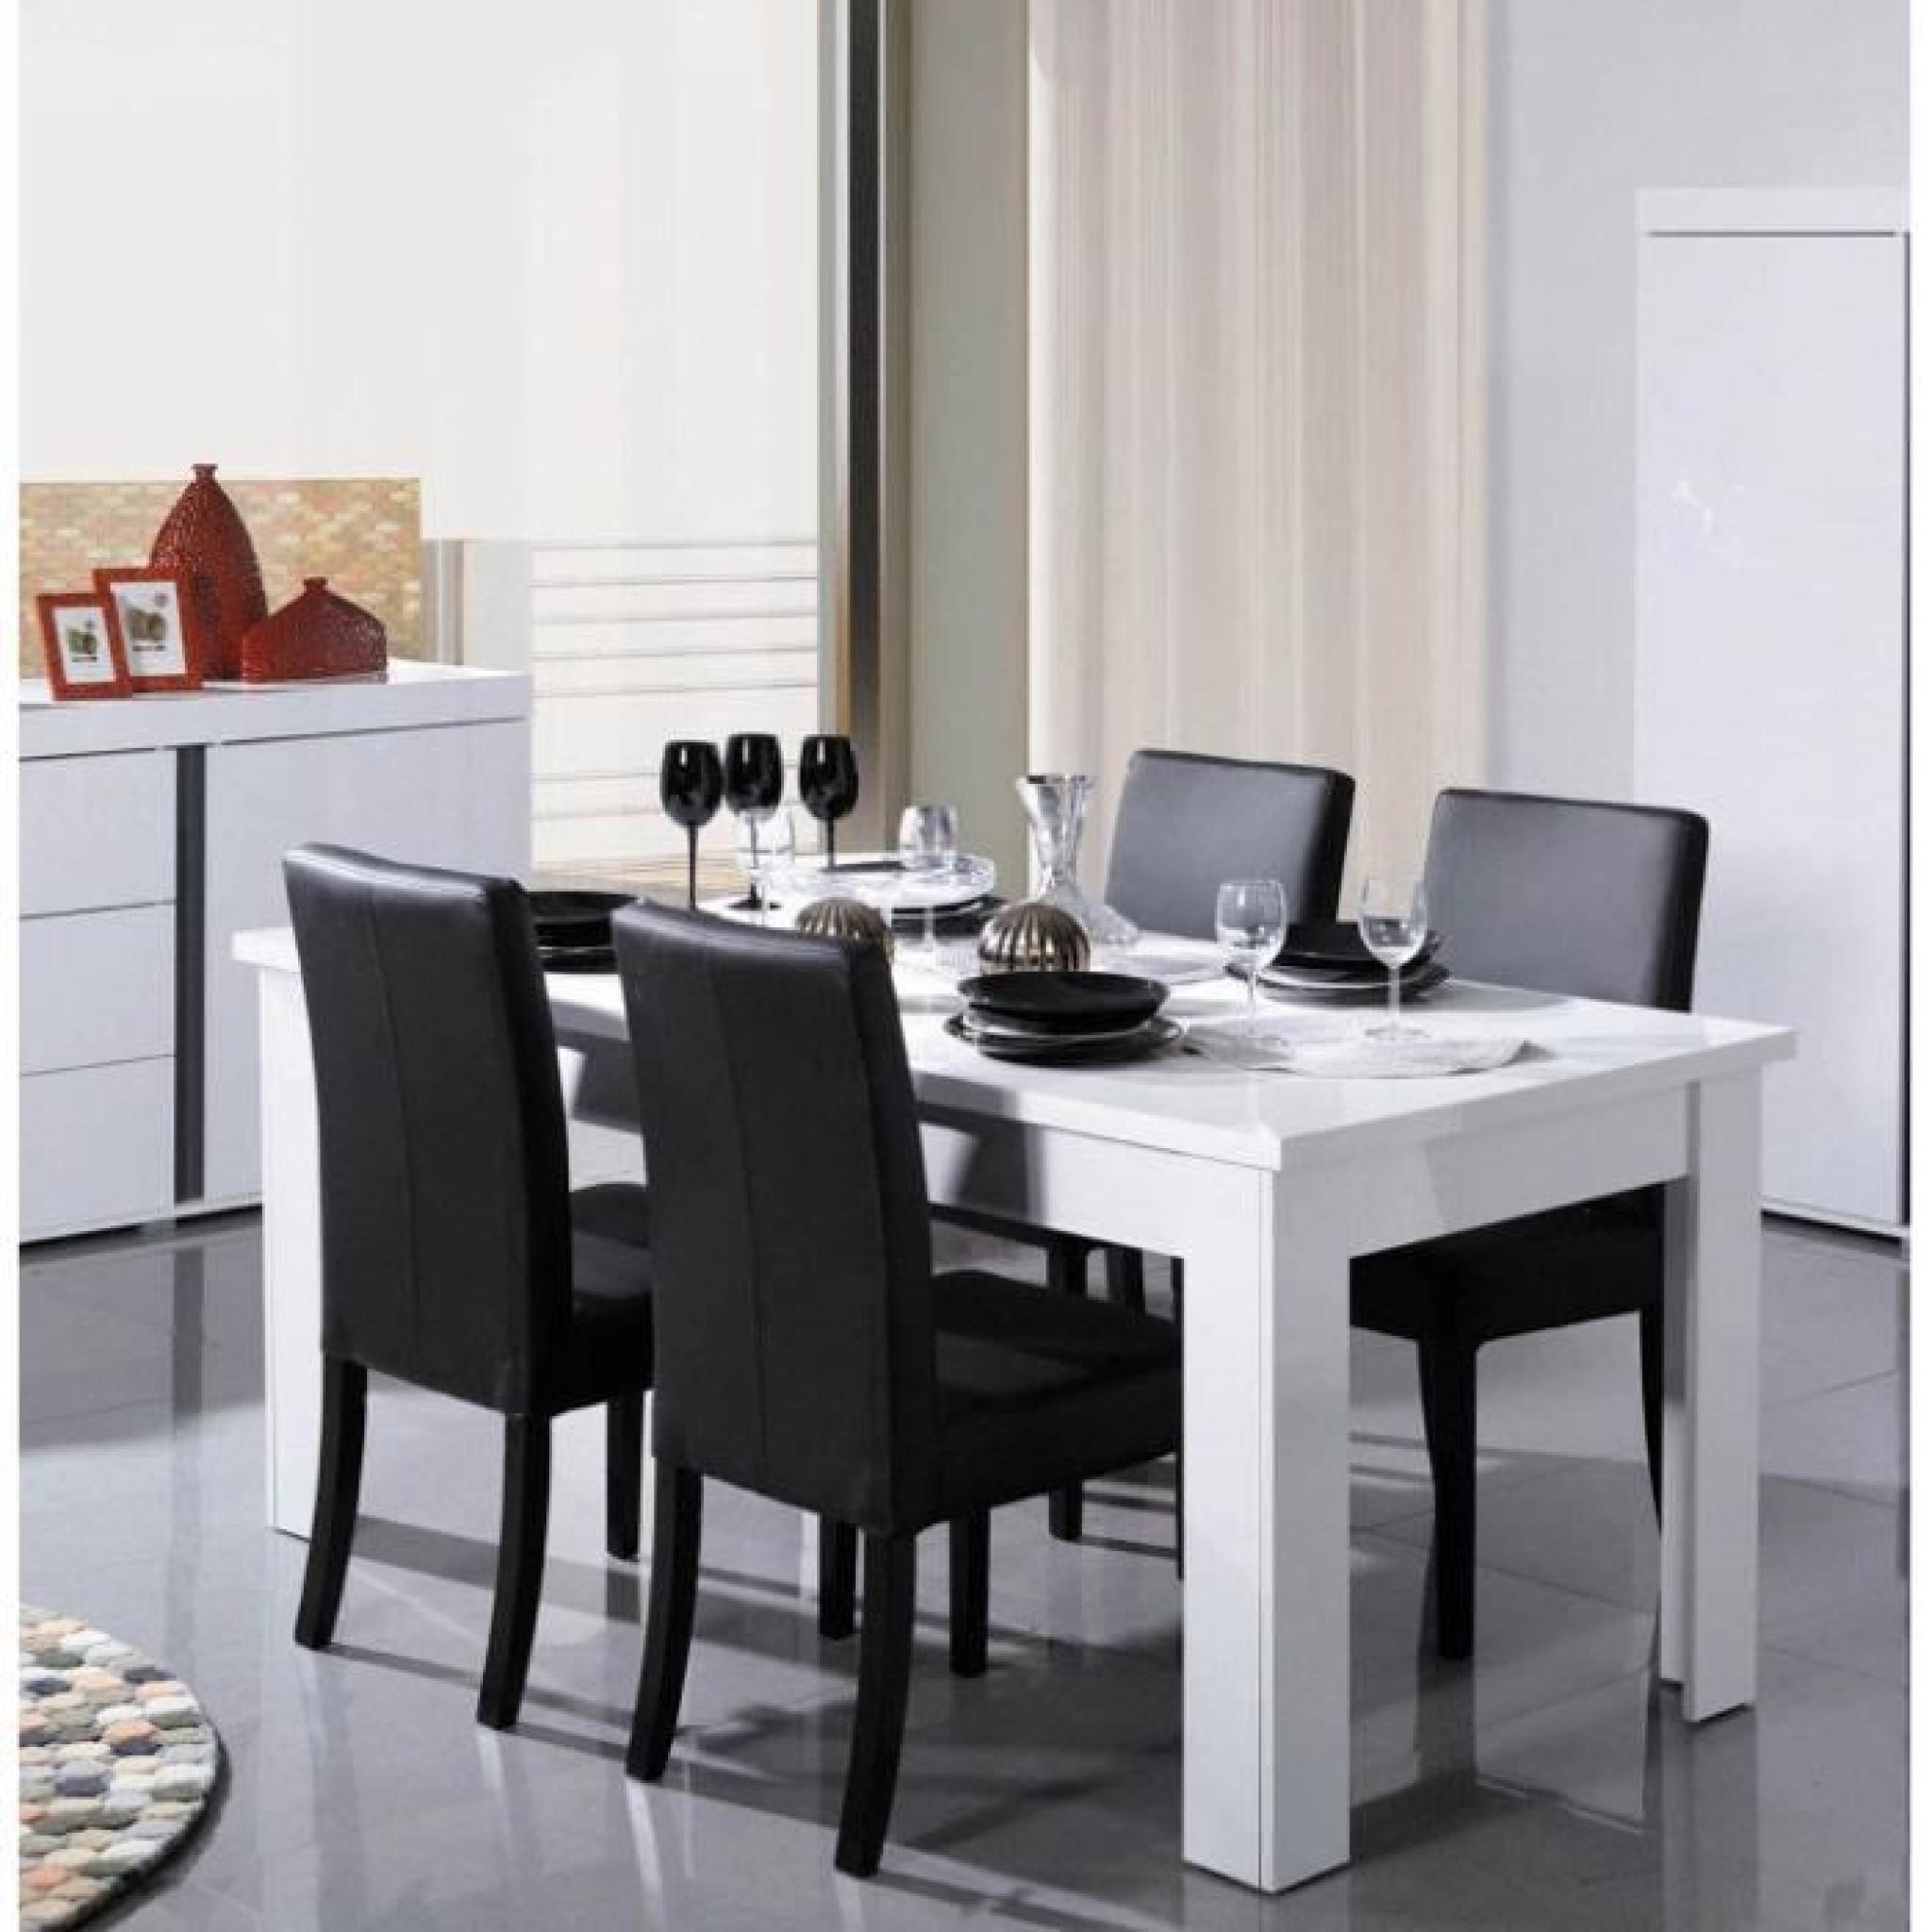 Table Salle A Manger 140 Cm Table Salle A Manger 140 Cm Interesting Salle Manger Design Noyer